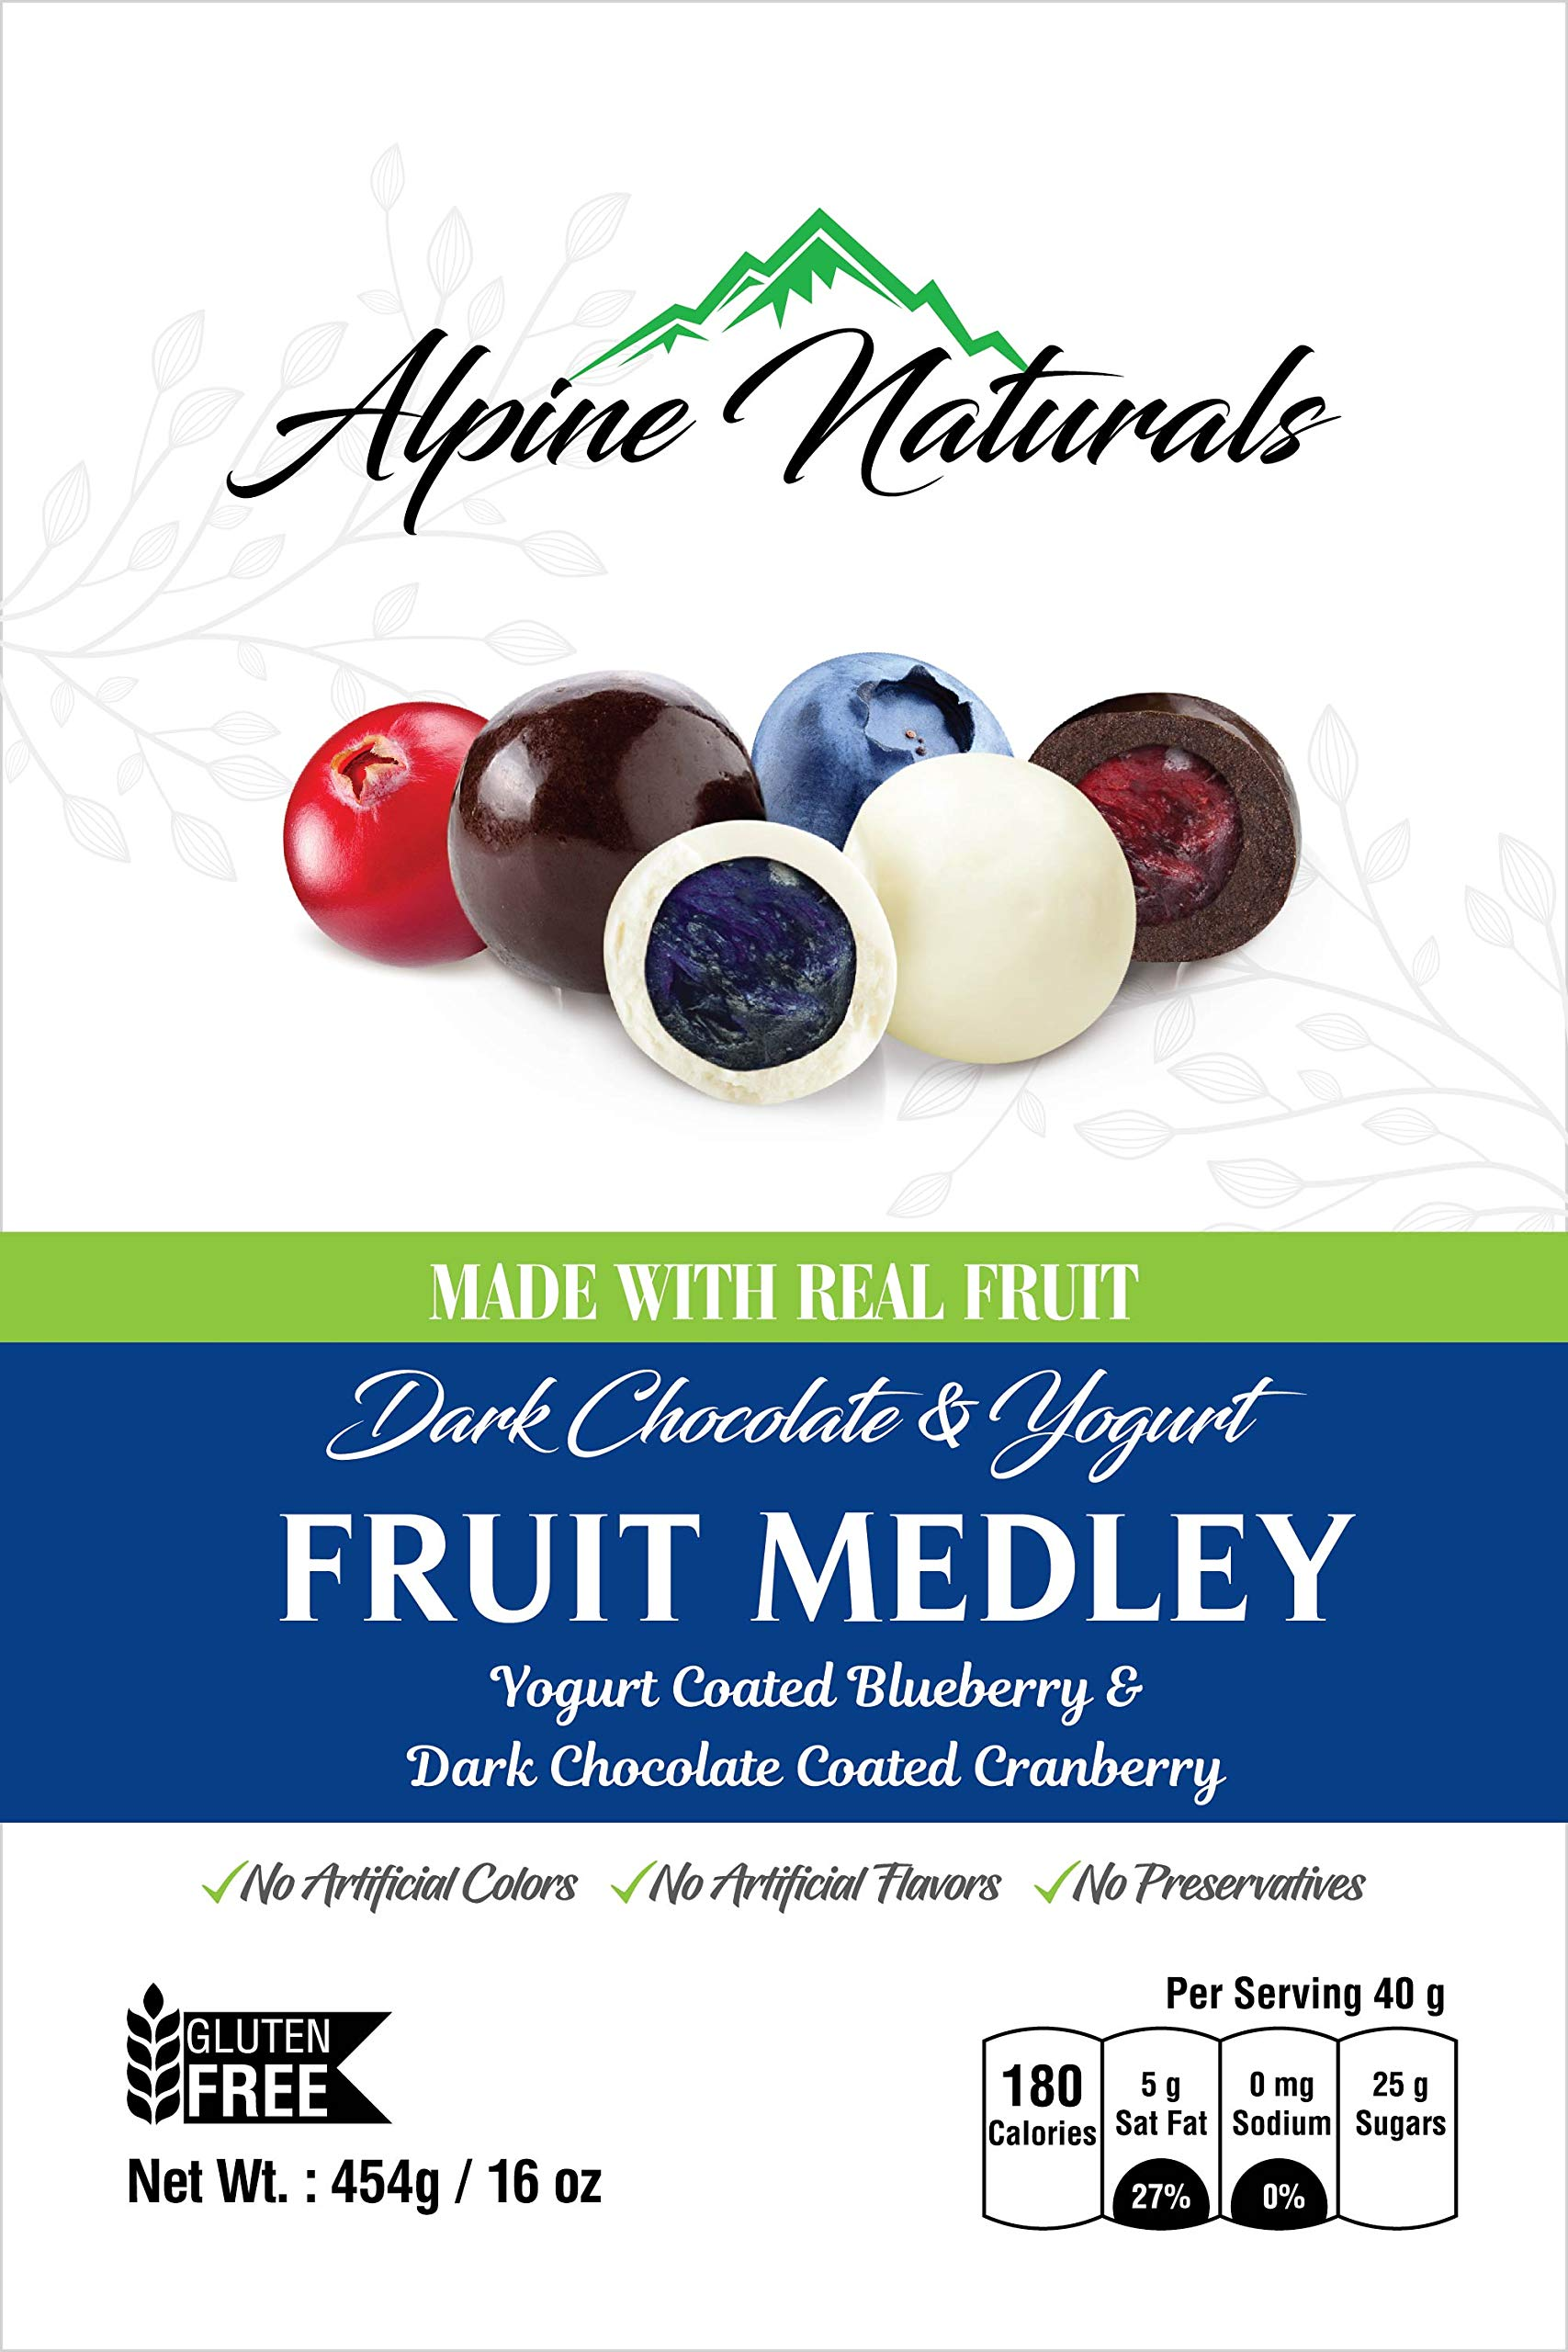 Alpine Naturals Fruit Medley Dark Chocolate Cranberries & Yogurt Blueberries, 16 Ounce